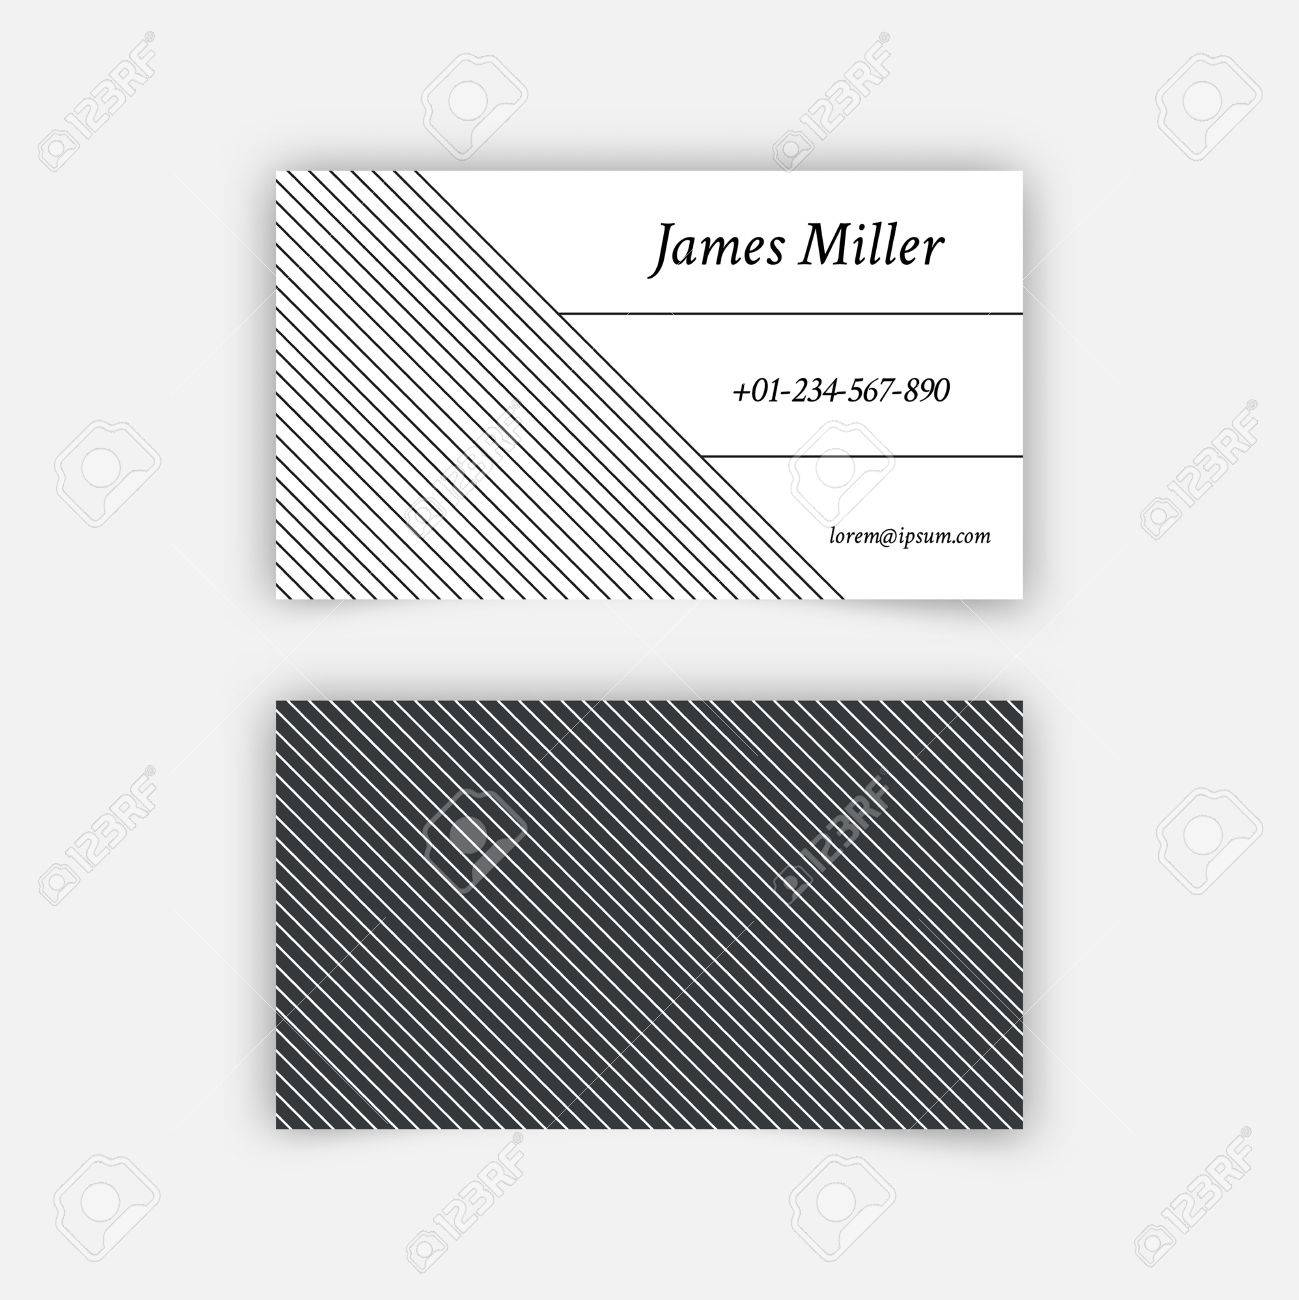 Business card blank template with textured background from thin business card blank template with textured background from thin diagonal lines minimal elegant vector design accmission Gallery